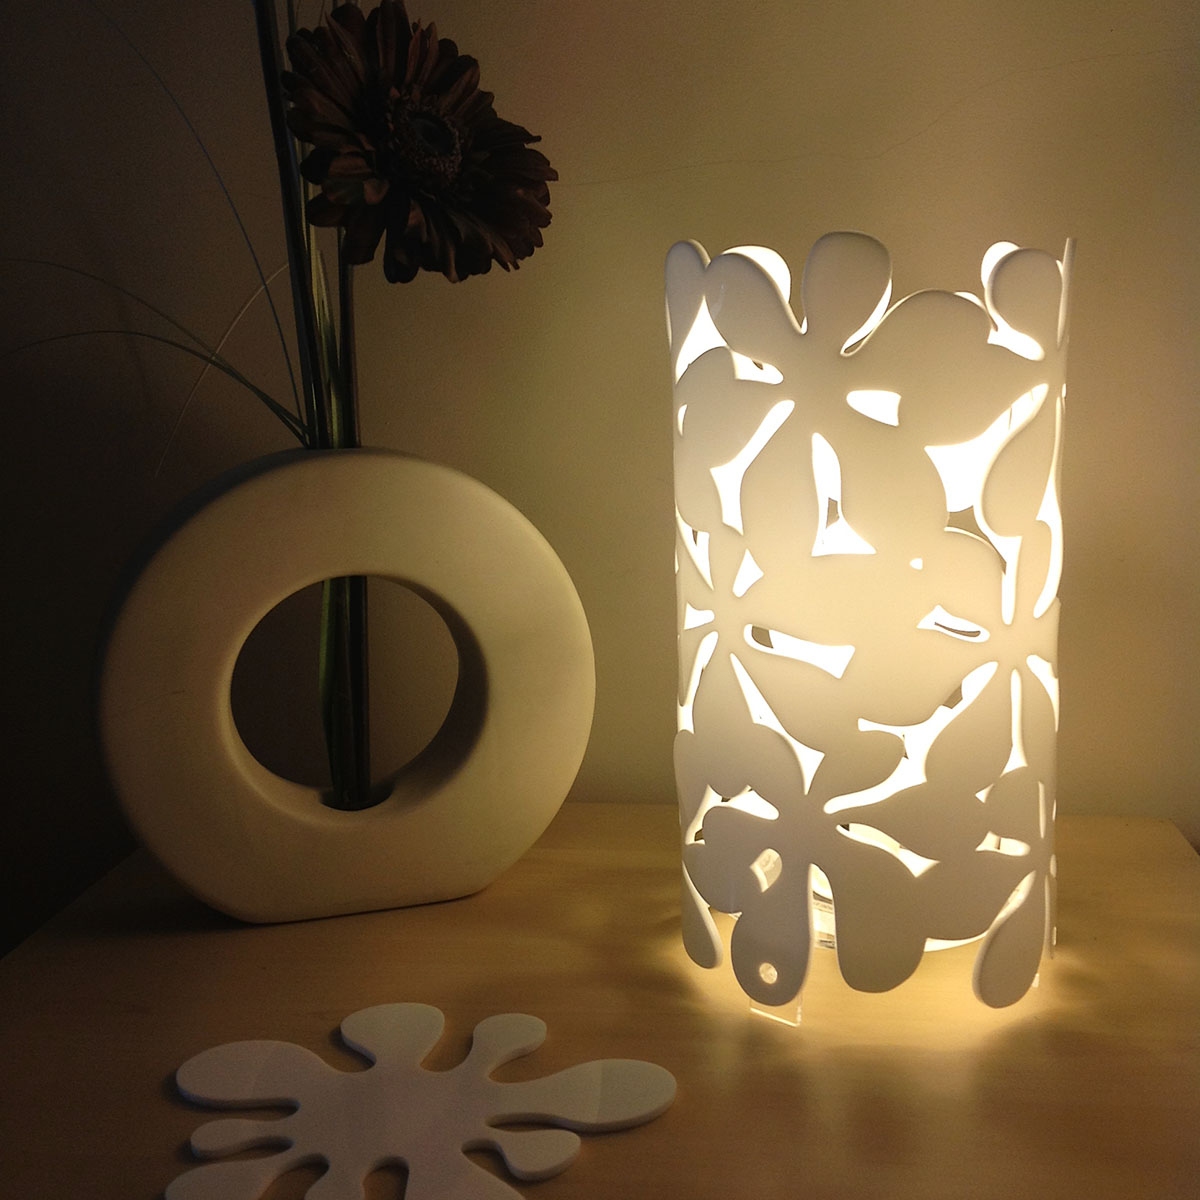 Where To Find The Best Battery Powered Wall Lights